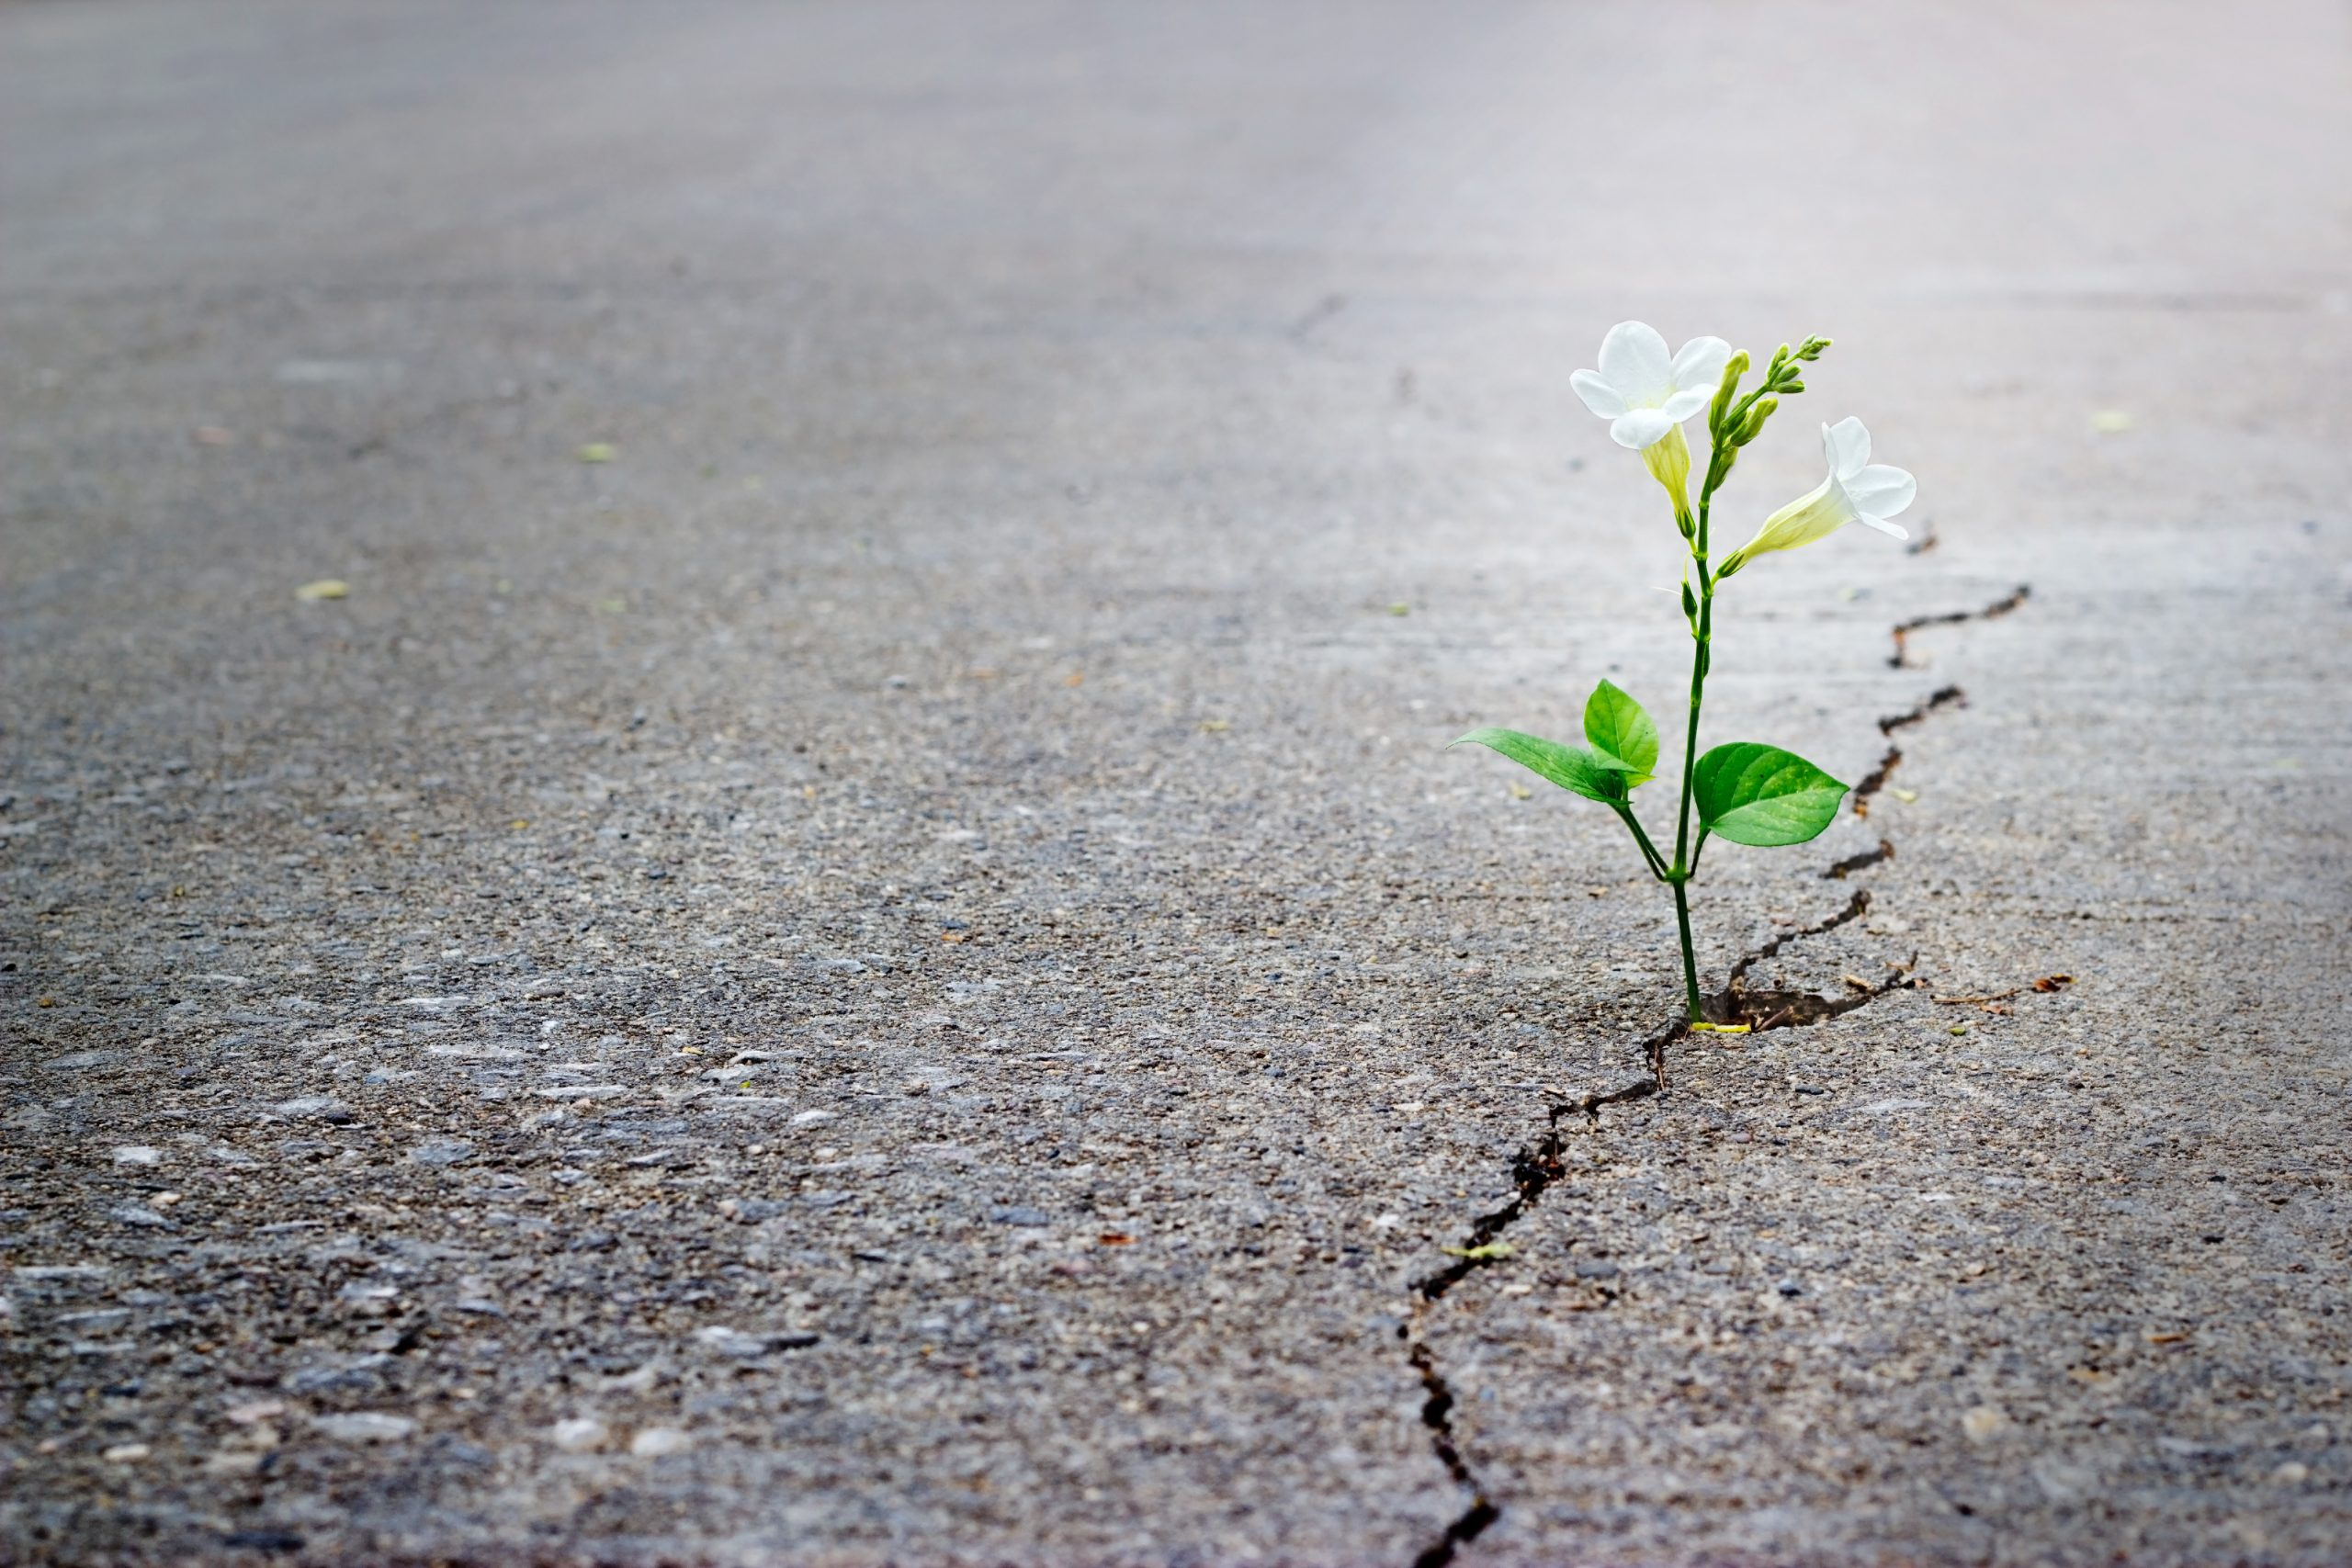 plant growing through a crack in the dry earth to symbolise good news overcoming bad